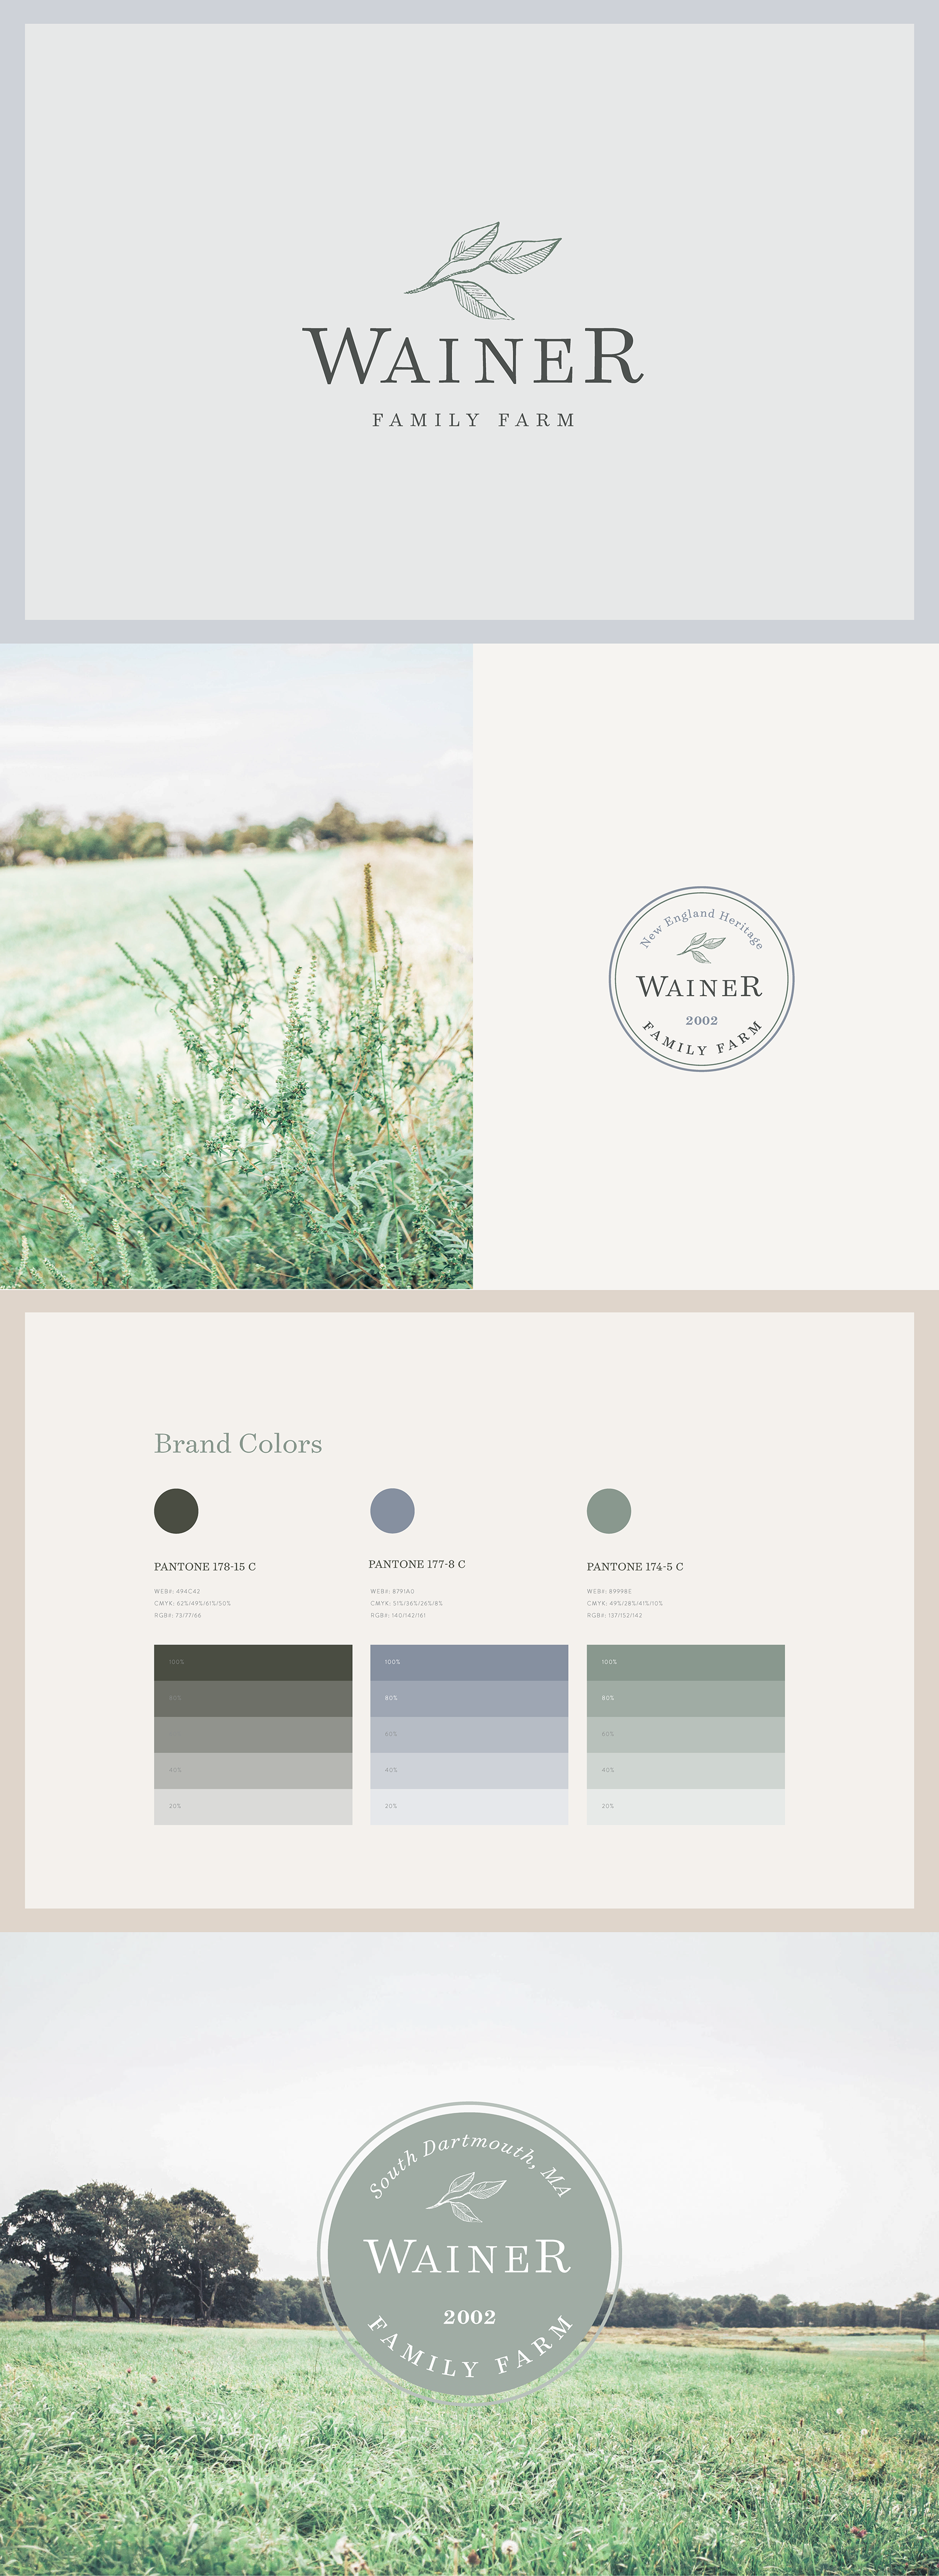 Wainer Family Farm Brand Launch